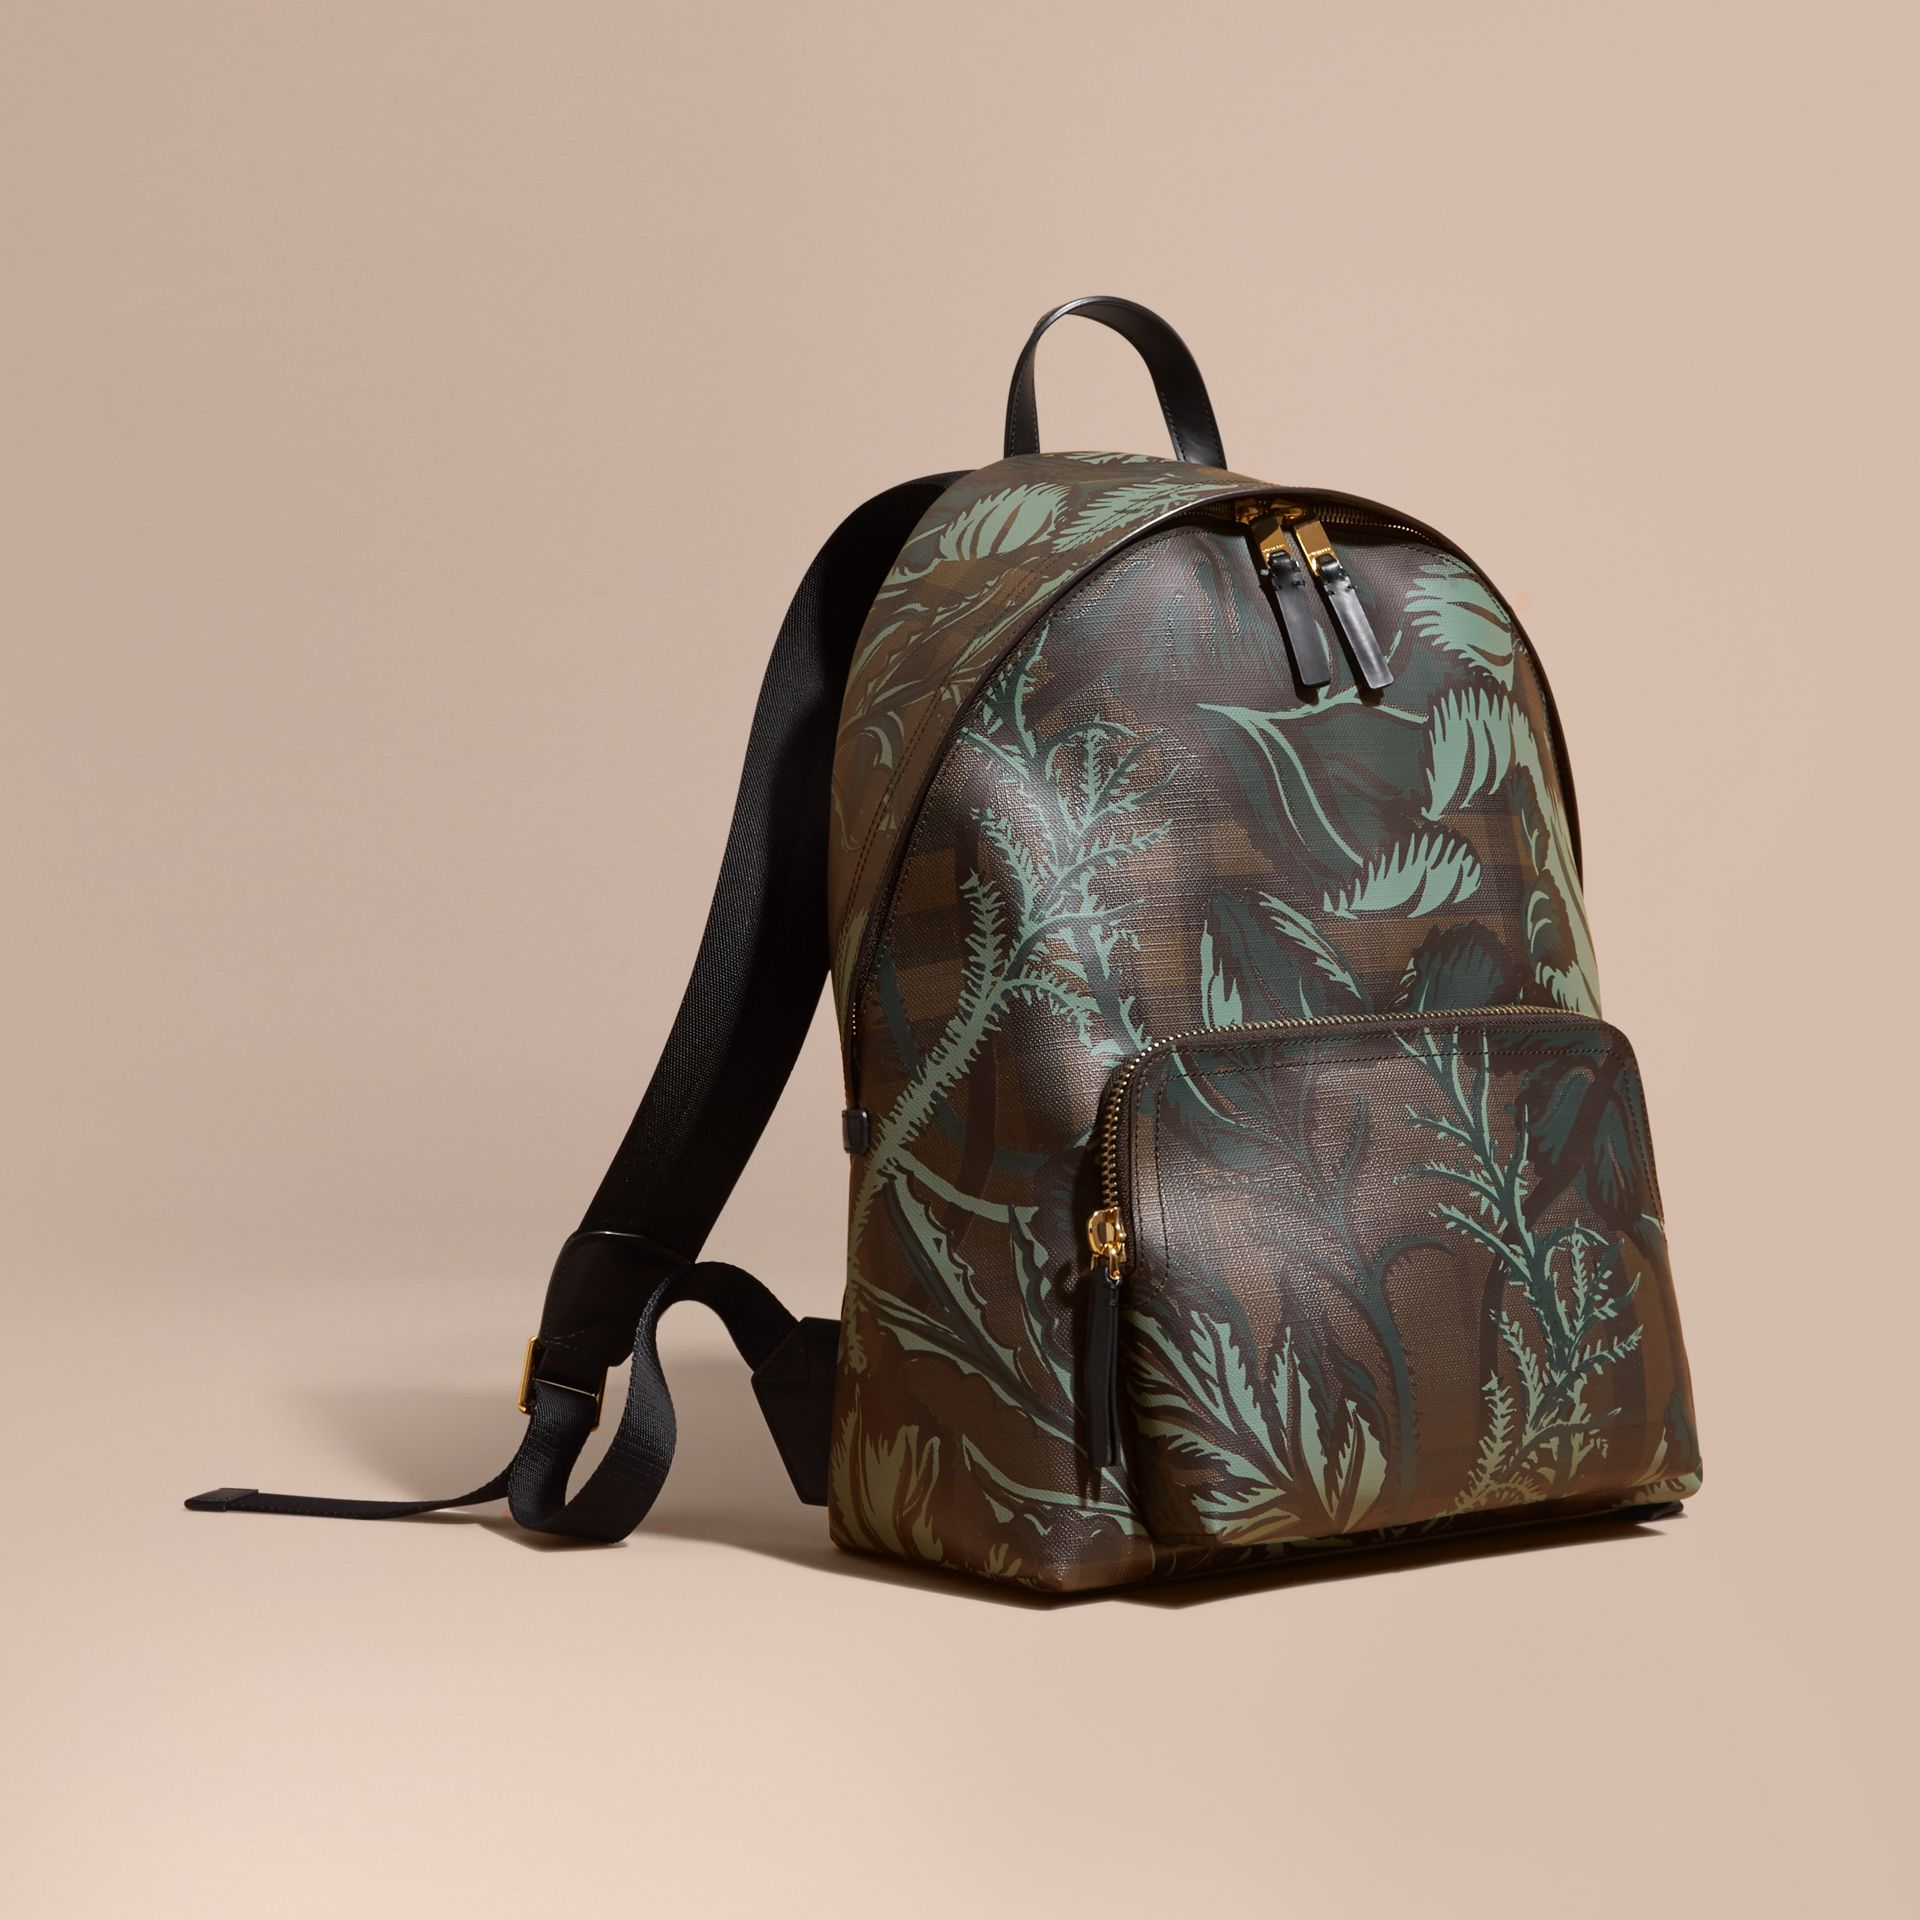 Leather Trim Floral Print London Check Backpack in Chocolate - gallery image 1